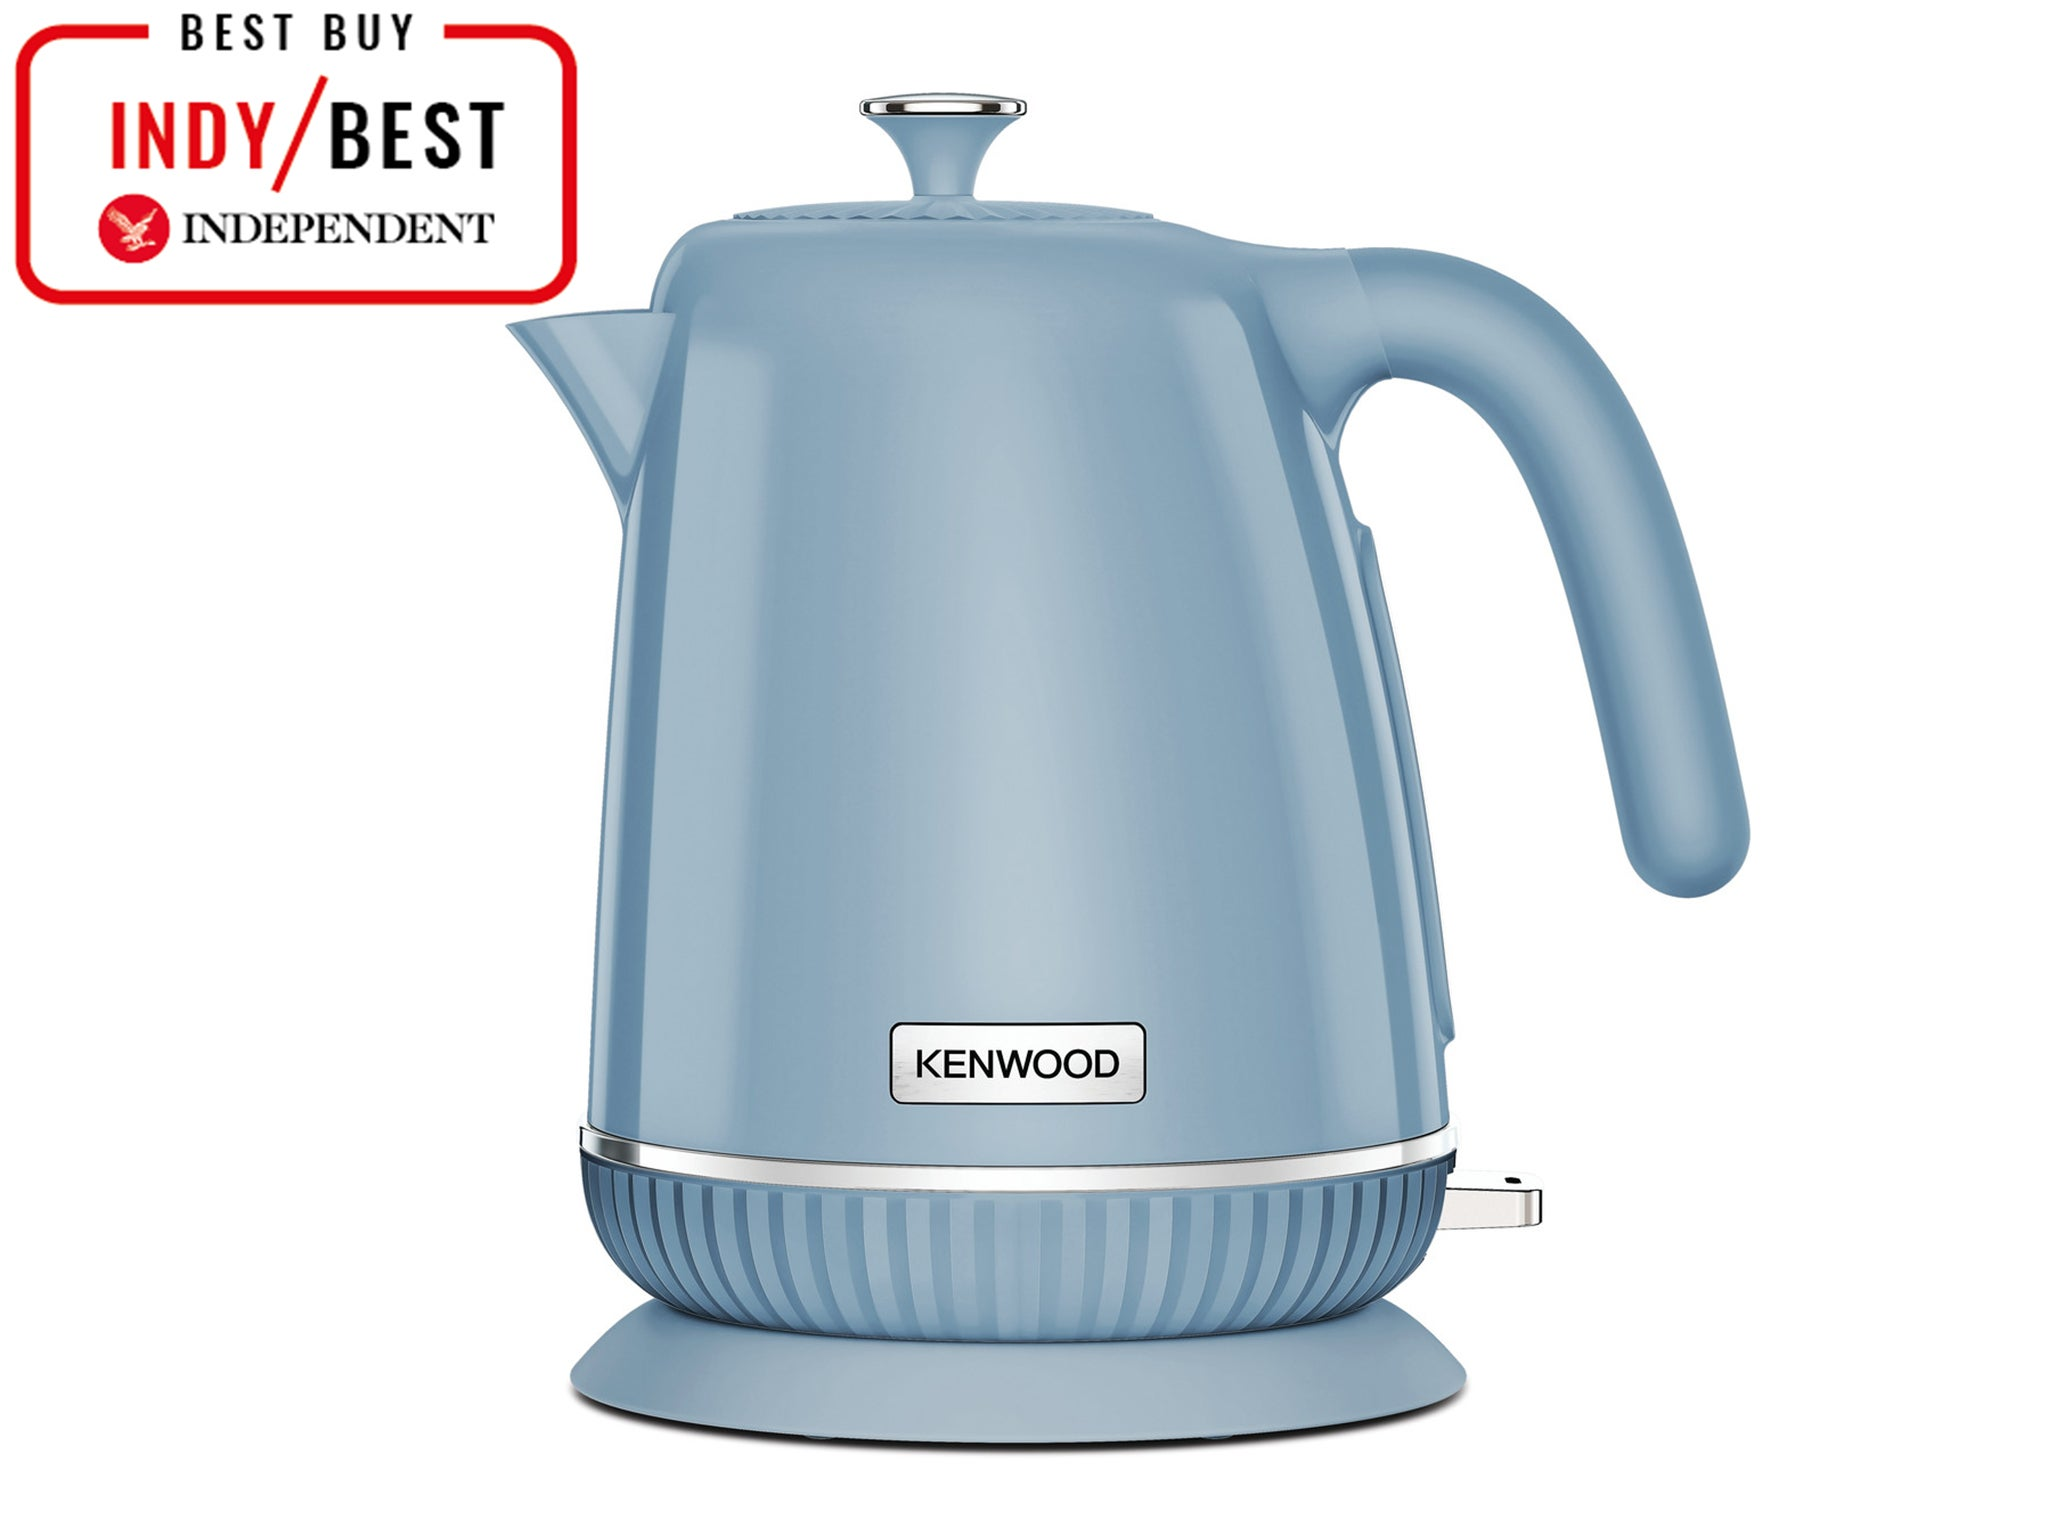 Top 10 Best Electric Kettles in 2019